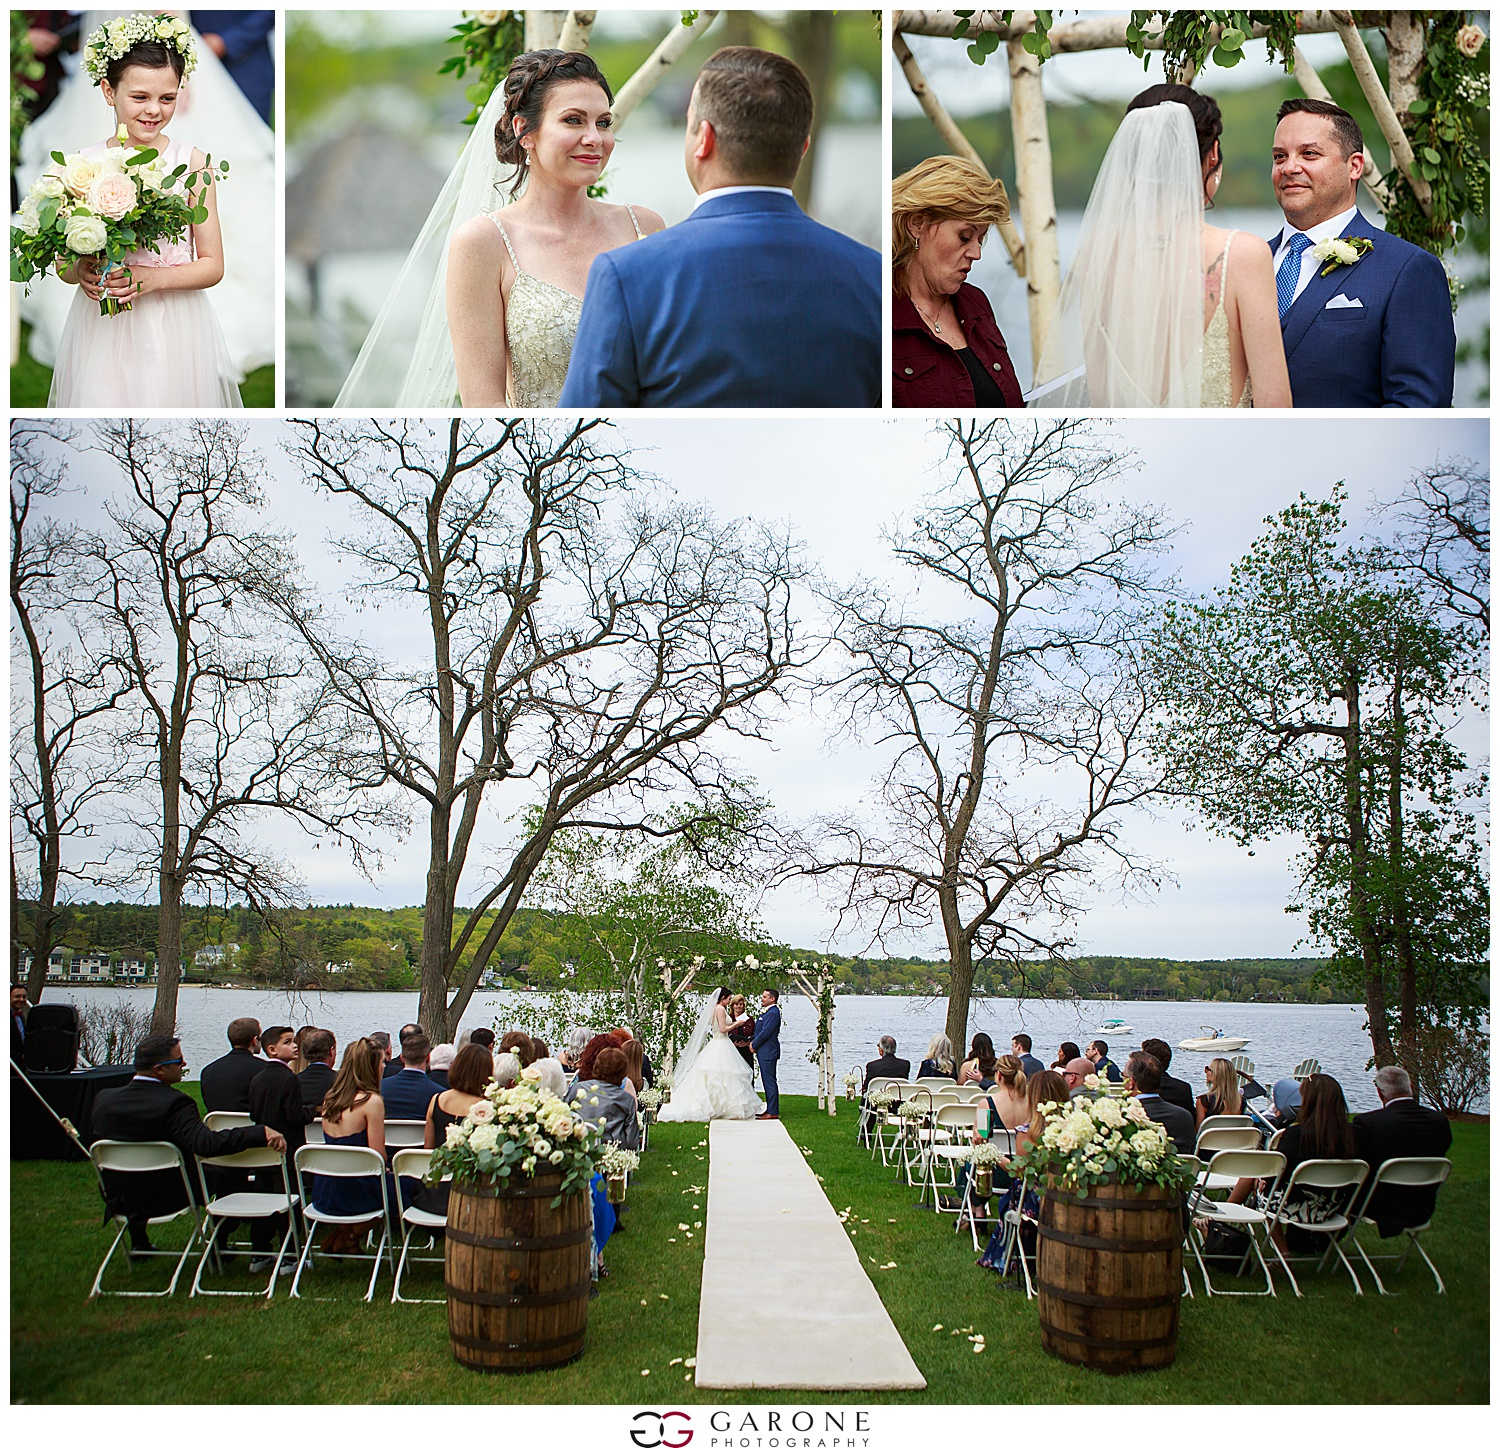 Shauna_Nathan_Carriage_House_Chuch_Landing_Lake_Winnapausakee_Wedding_0016.jpg